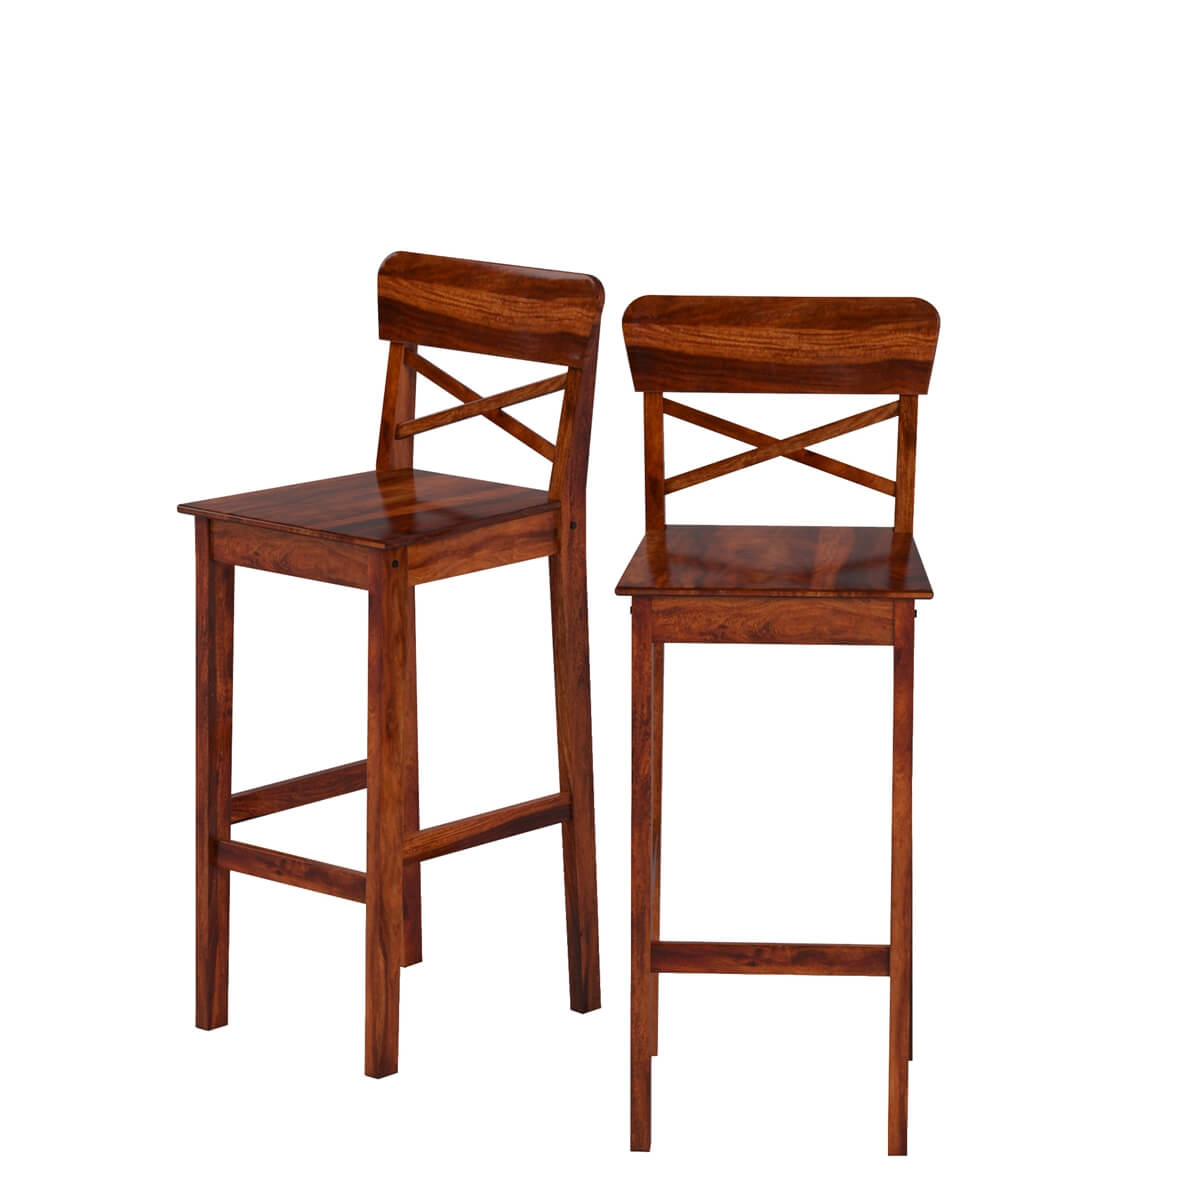 Ranch Solid Wood Tall Rustic Bar Chair Set of 2